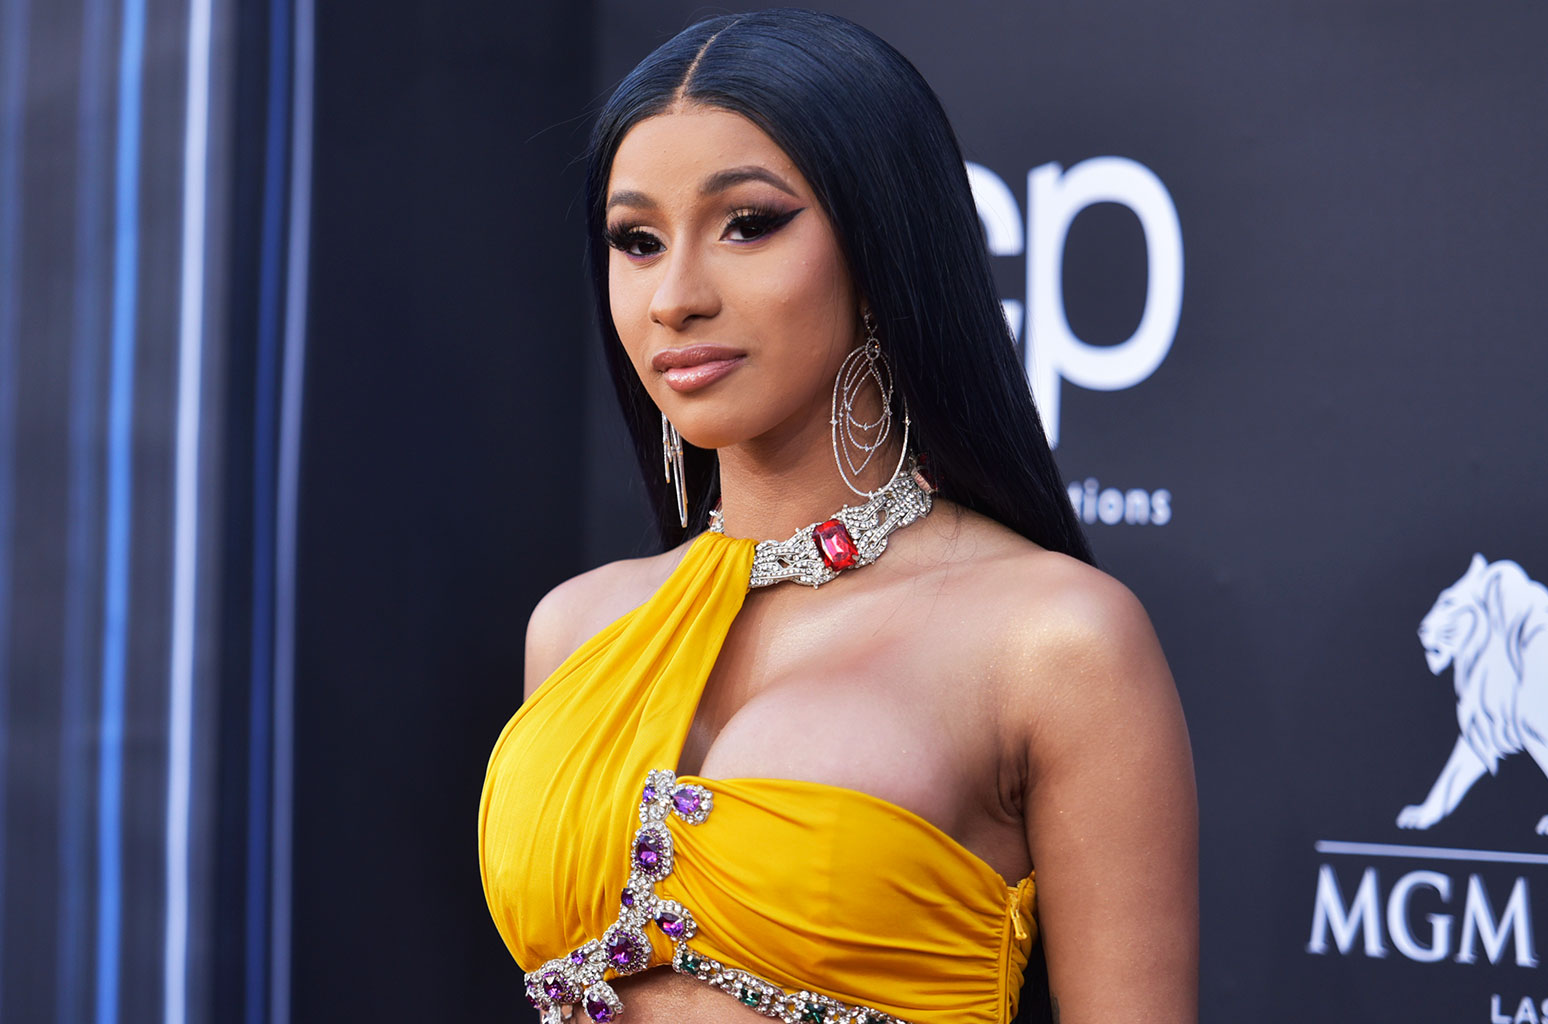 Cardi B expresses her desire to participate in politics and Bernie Sanders supports her